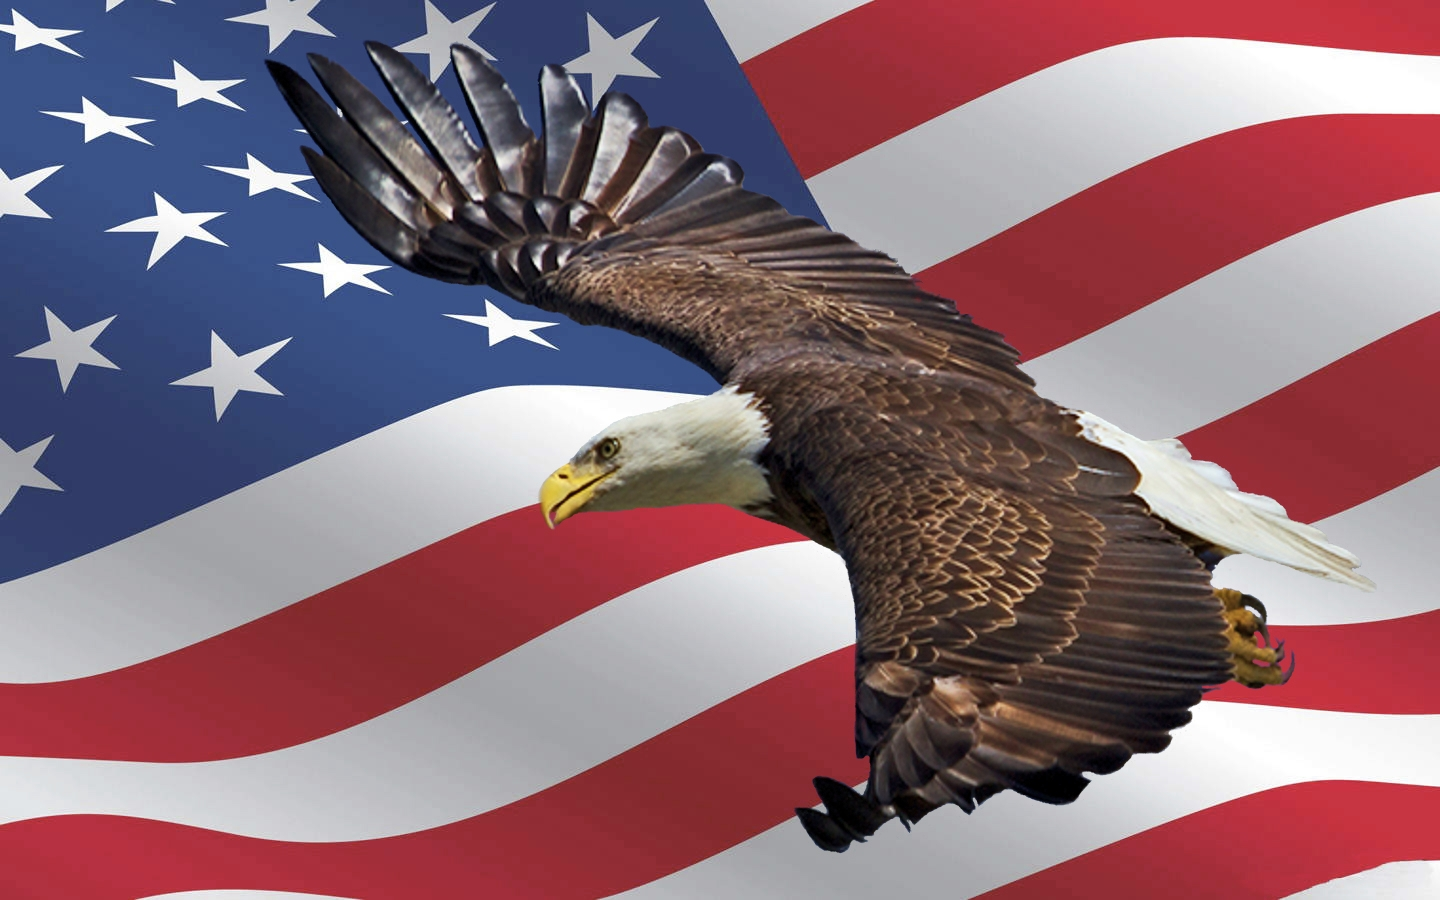 A Veterans Day Salute to all who served past and present and especially to those who gave their all that we would remain a  United  States of America